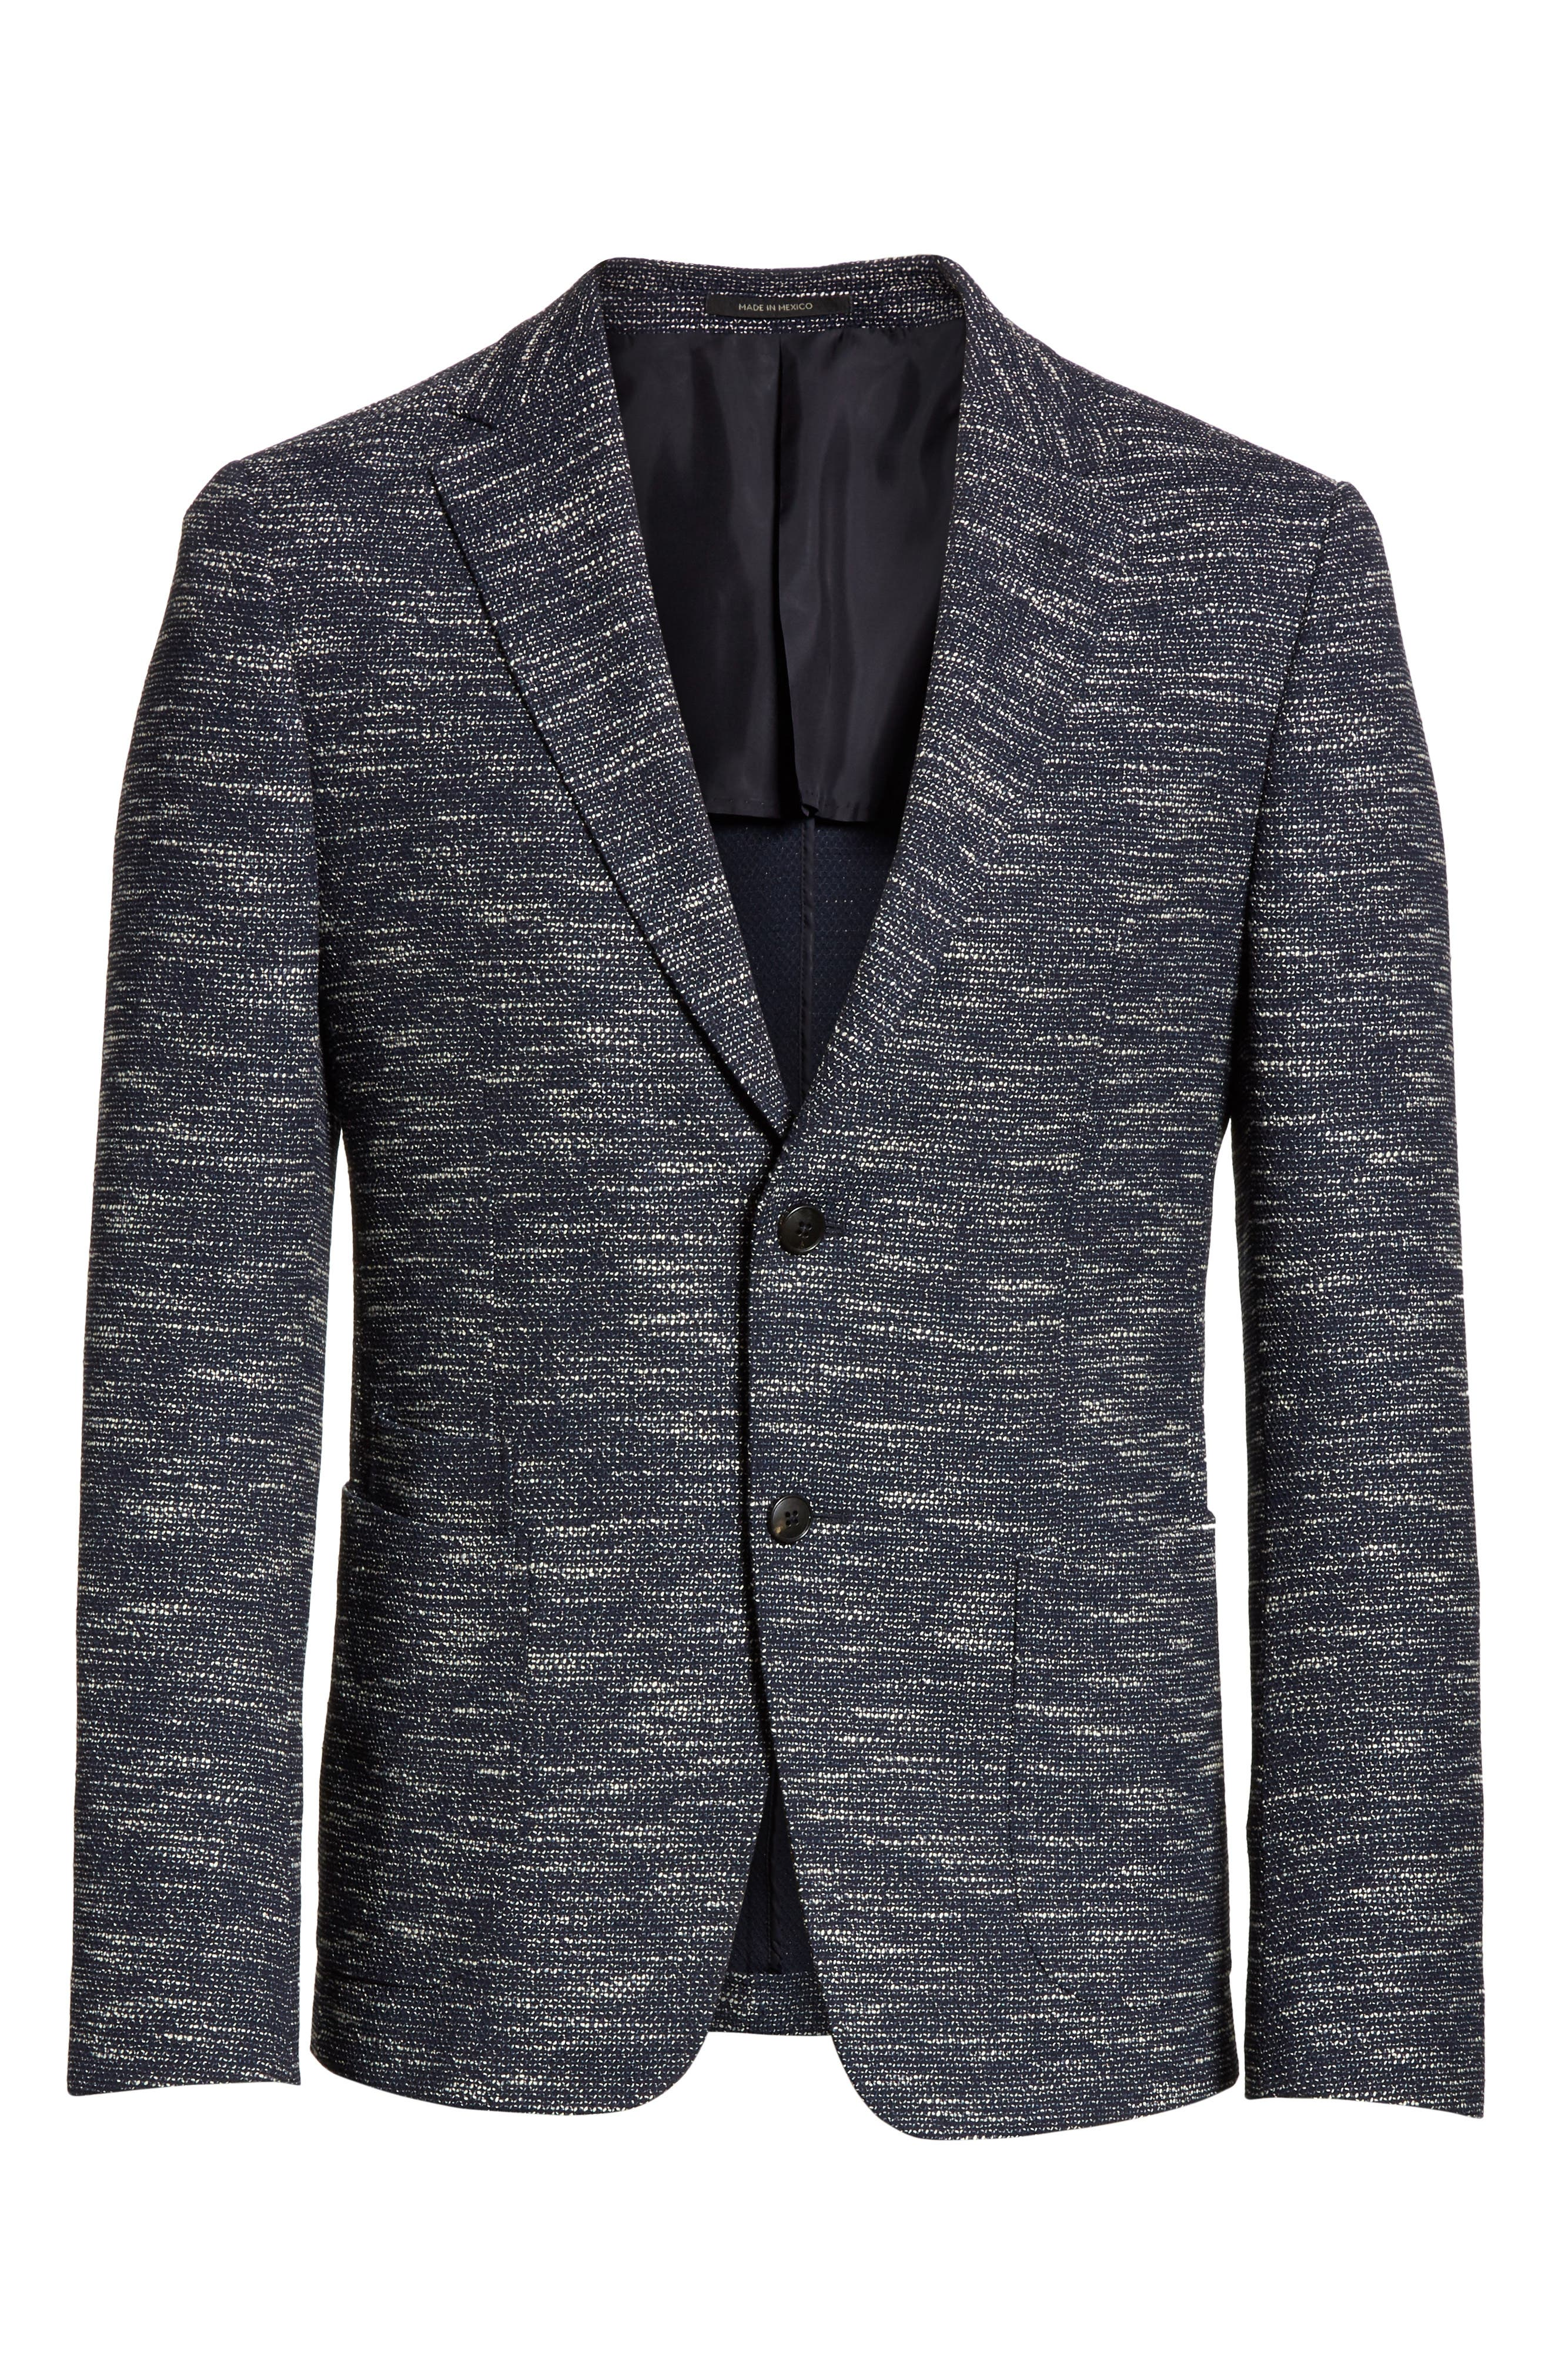 Classic Fit Stretch Wool Blend Blazer,                             Alternate thumbnail 6, color,                             Navy Solid